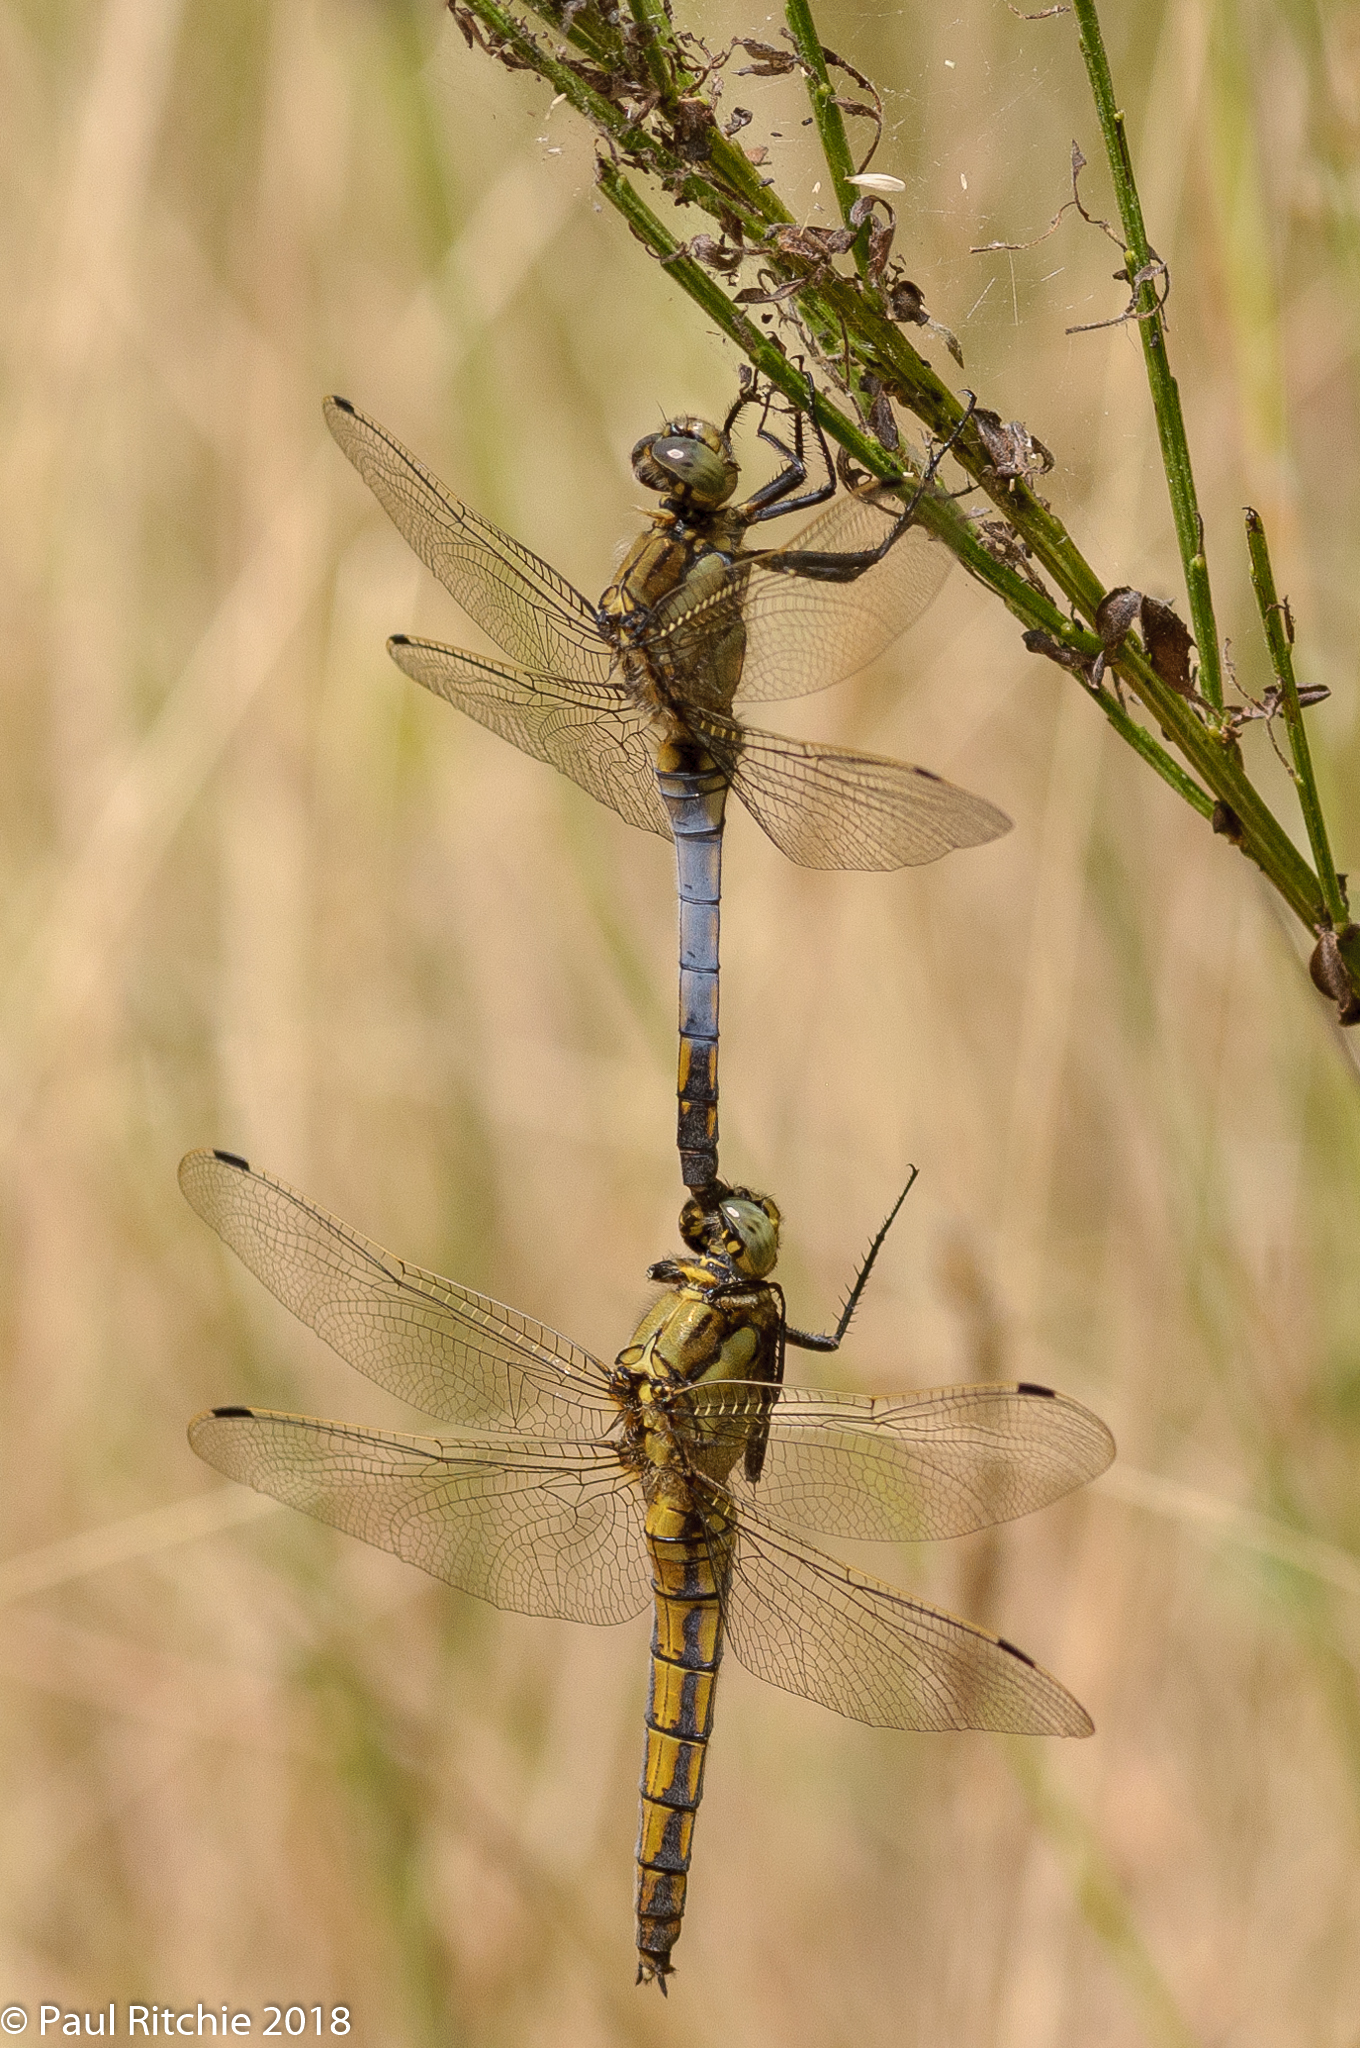 Black-tailed Skimmer (Orthetrum cancellatum) - pair in tandem